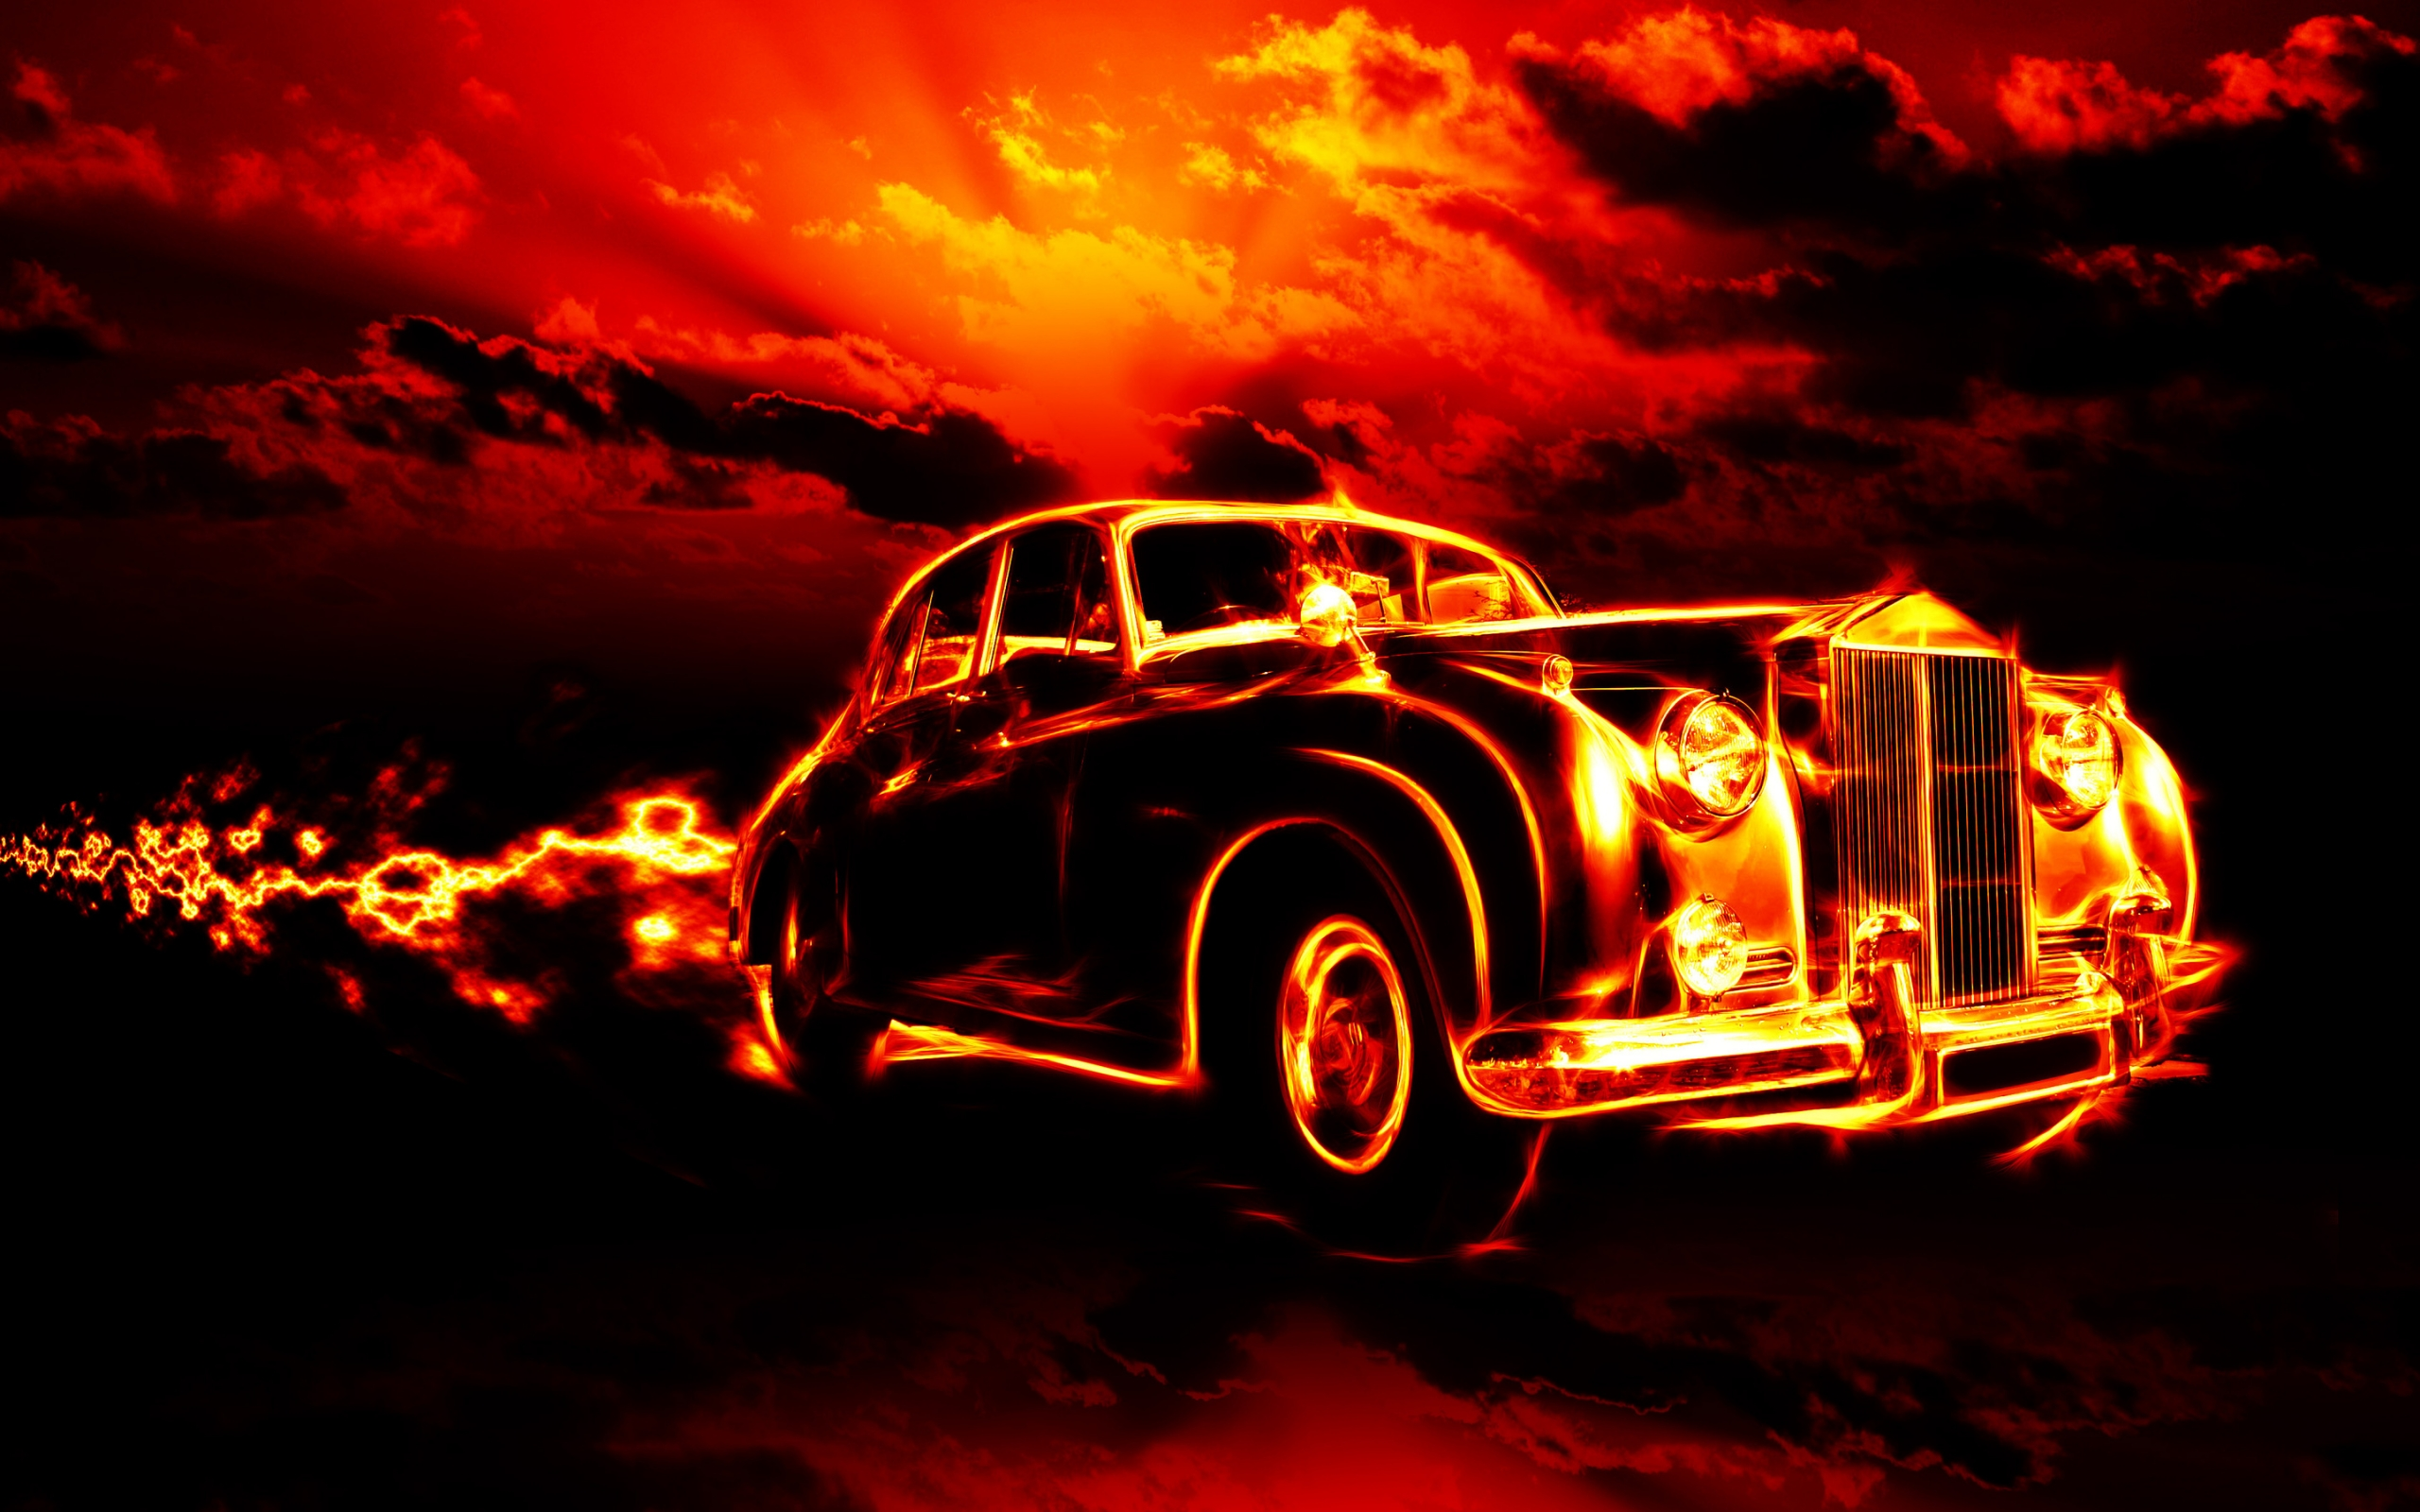 Car in Fire wallpapers and images   wallpapers pictures photos 2560x1600